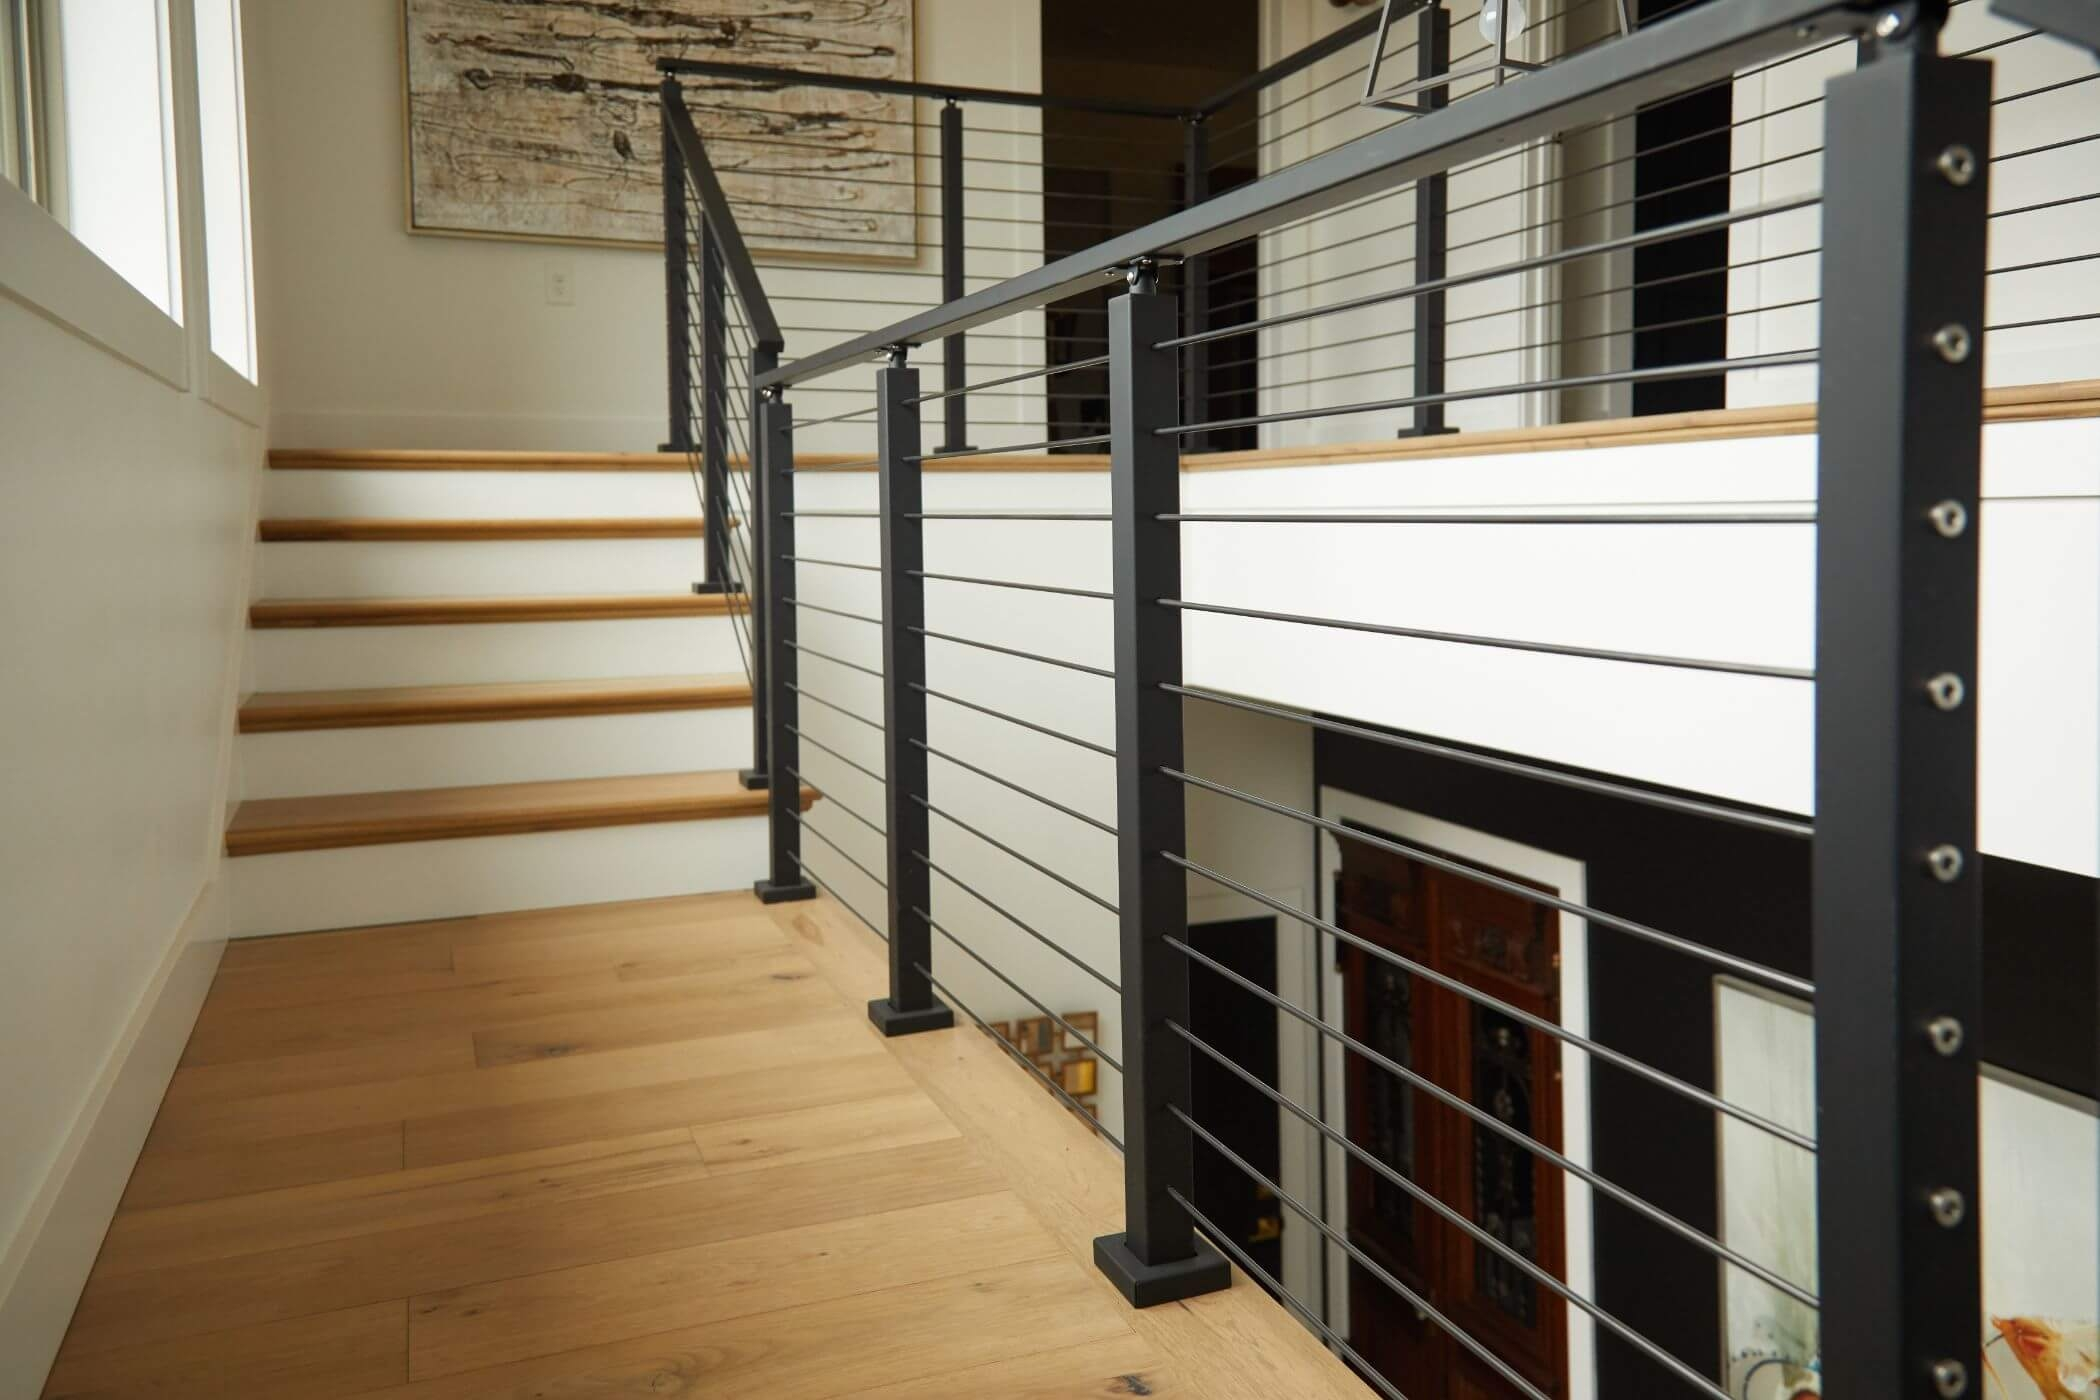 Stainless Steel Railing Rod Stair Railing Kits Posts Parts | Attaching Handrail To Post | Spindles | Newel Post | Stair Handrail | Baluster | Rim Joist